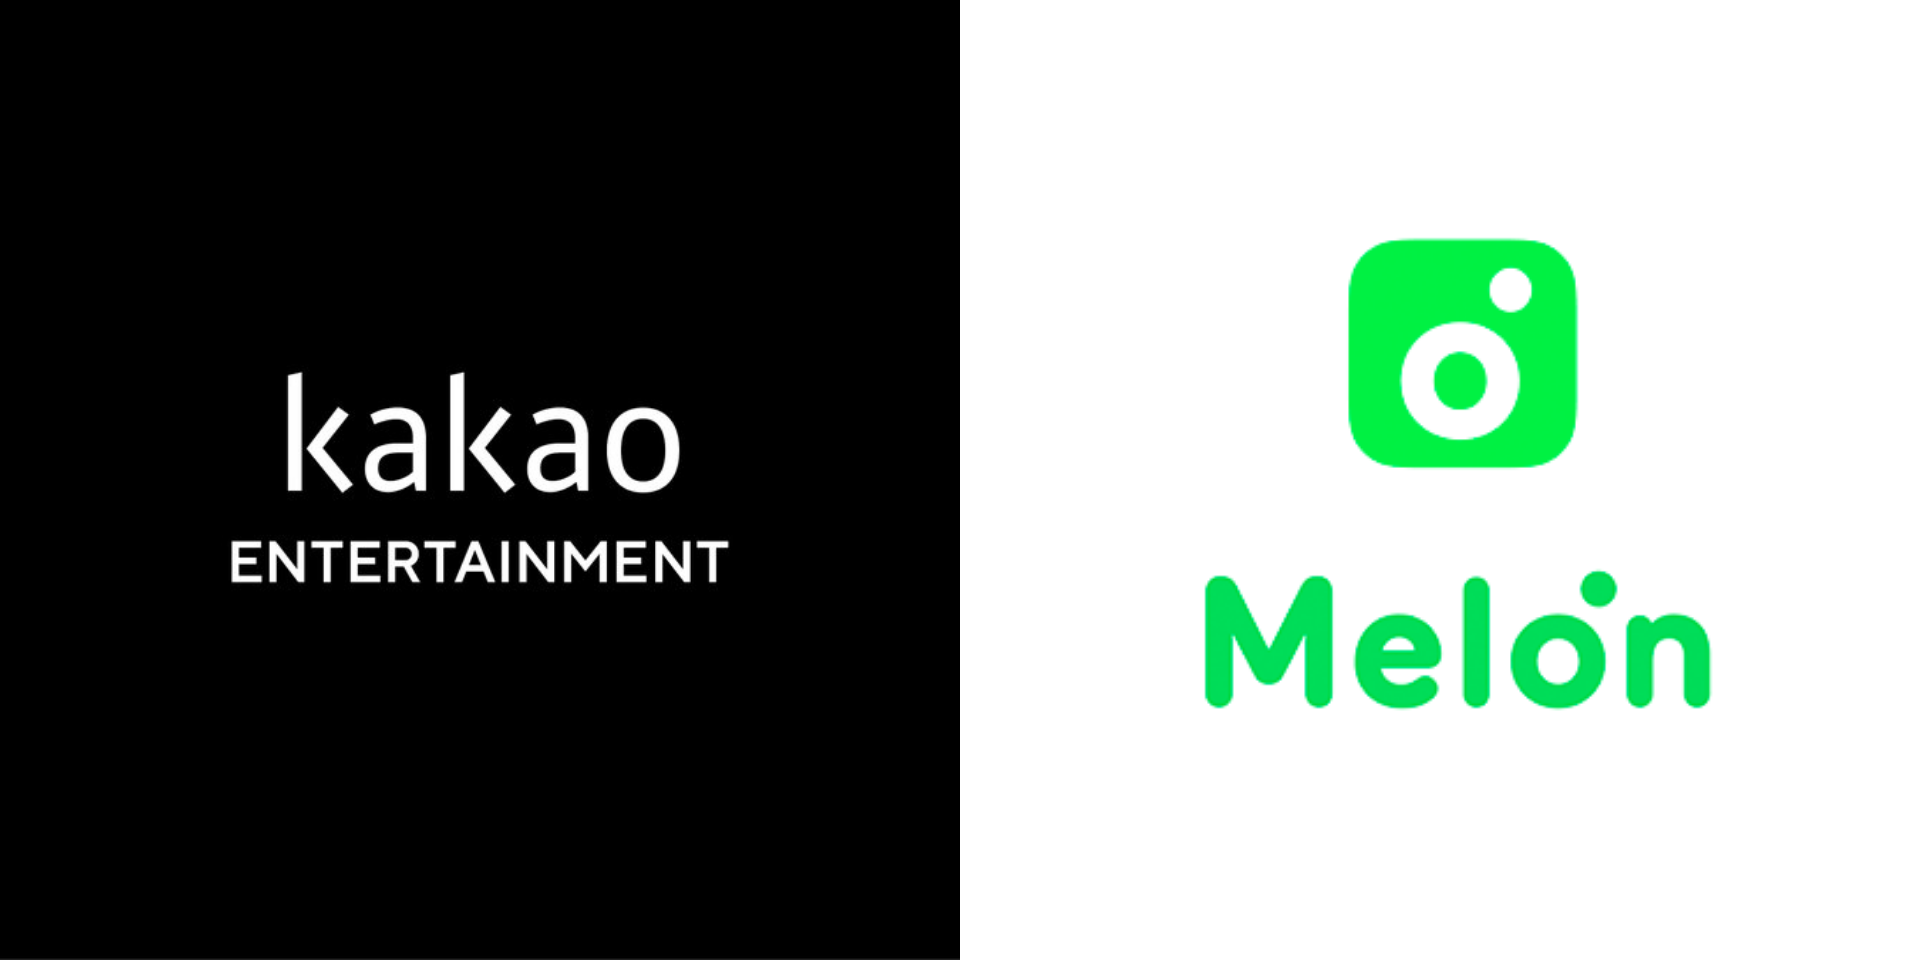 Kakao Entertainment to join forces with Melon Music Company this September